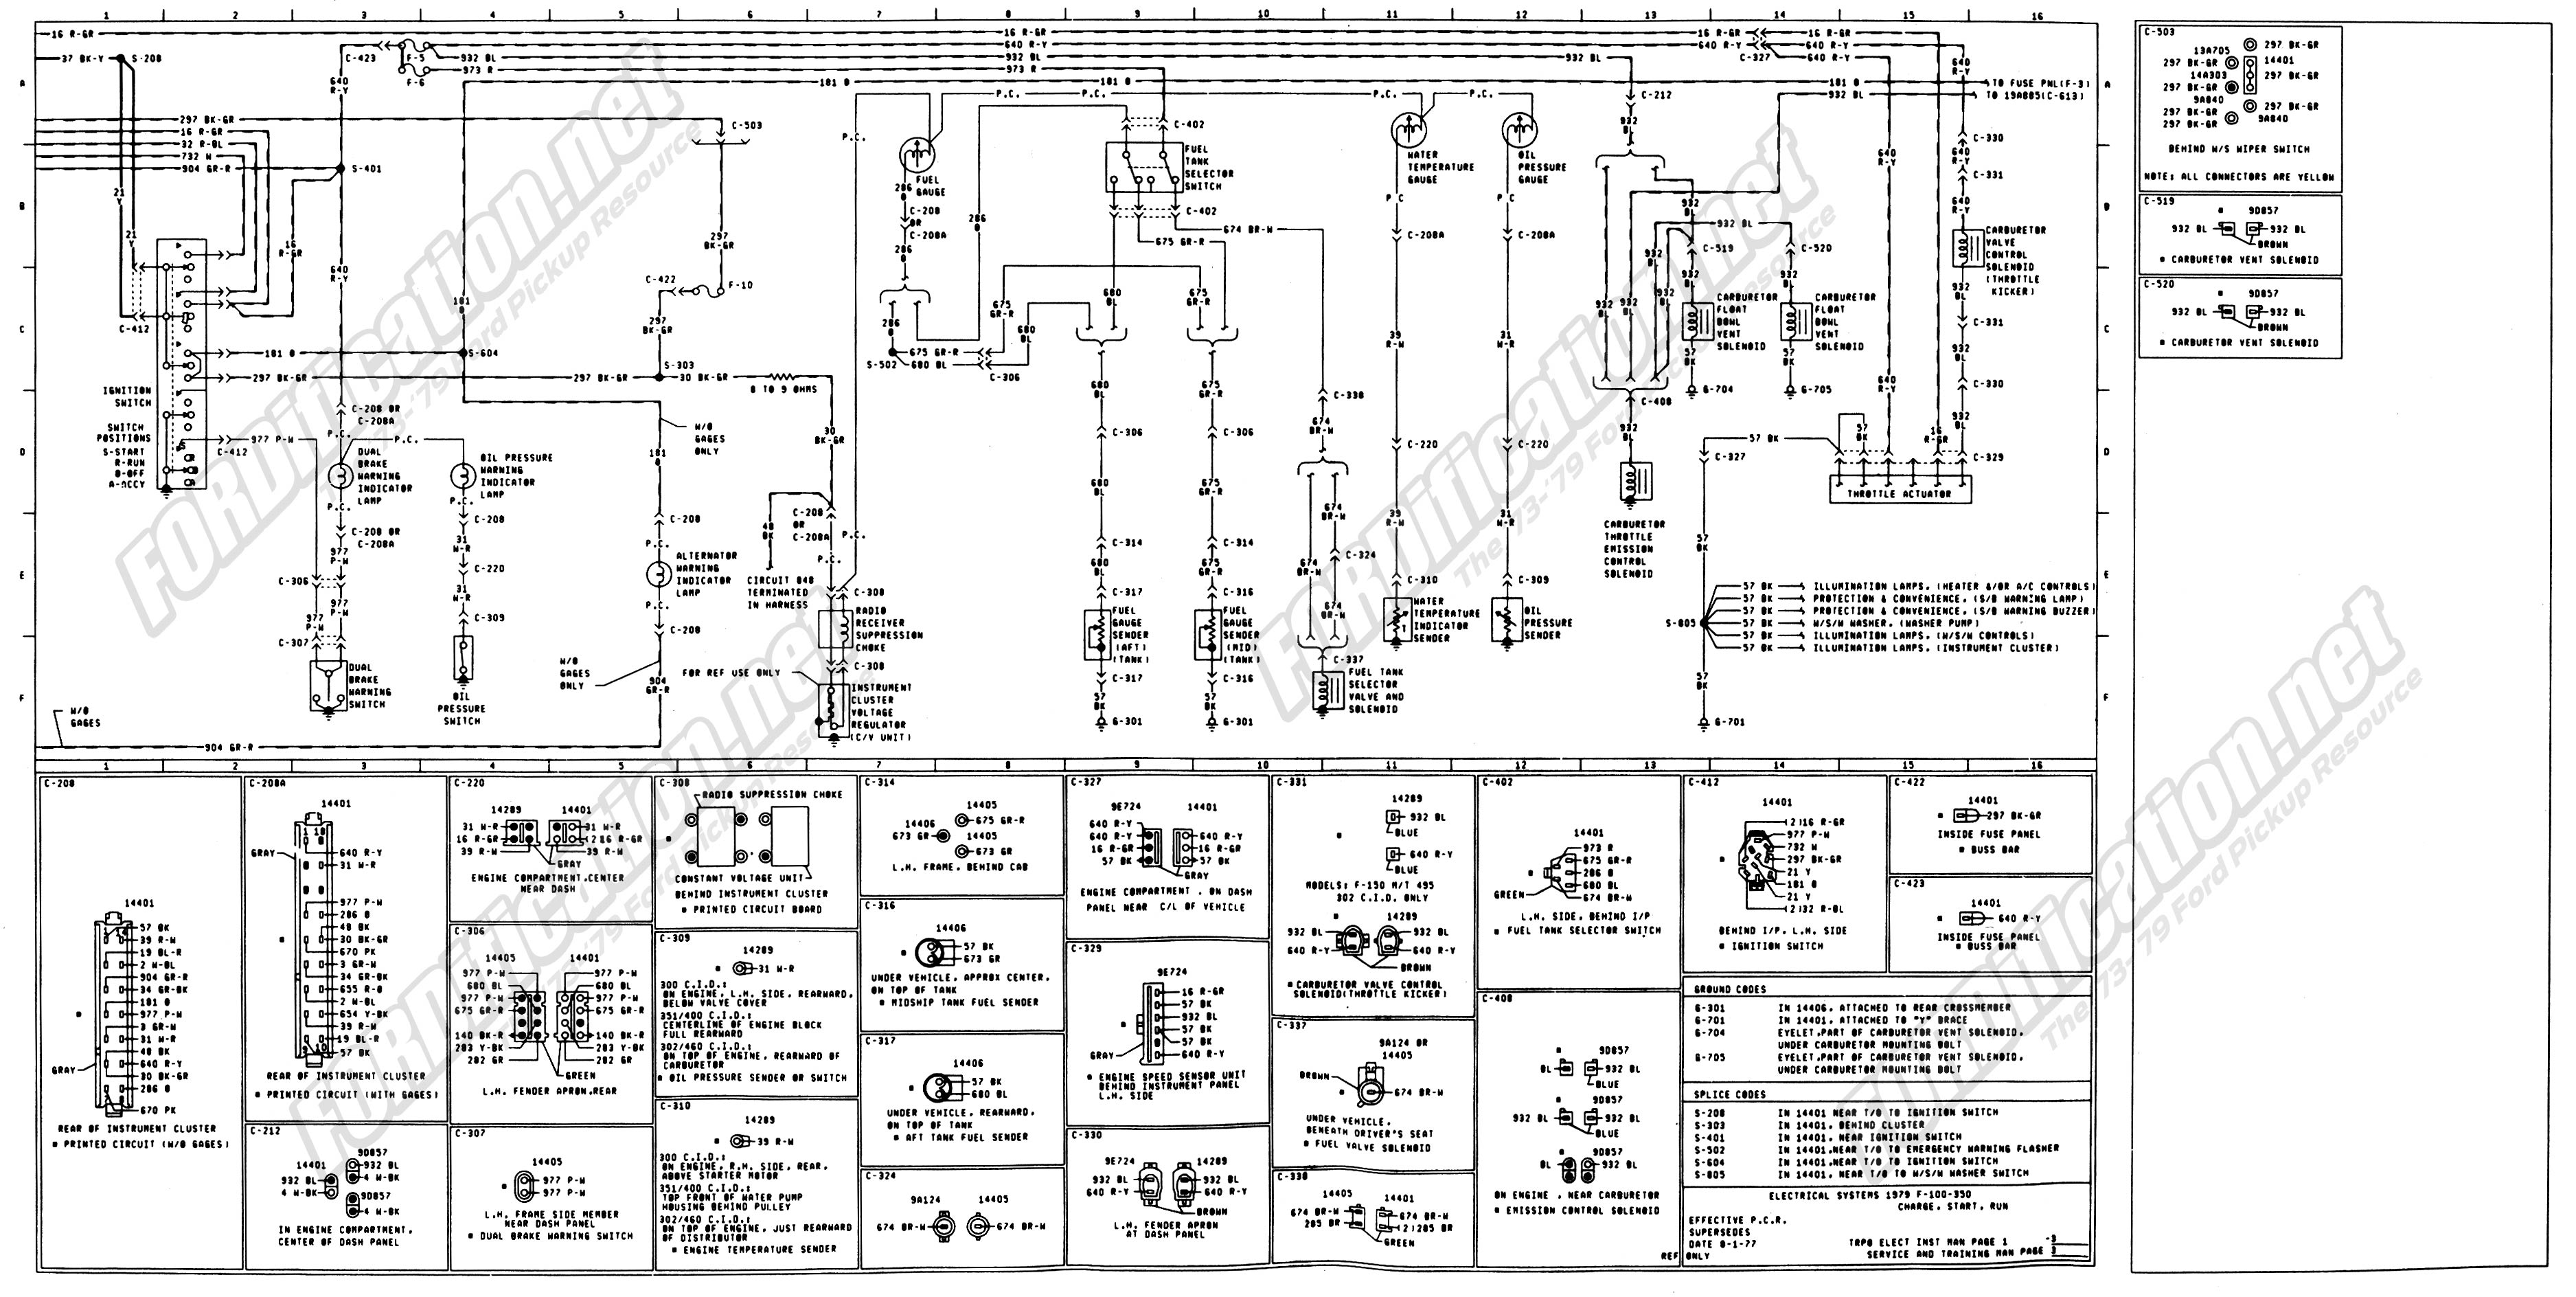 wiring_79master_3of9 1973 1979 ford truck wiring diagrams & schematics fordification net wire harness schematic for 2004 bombardier at gsmportal.co